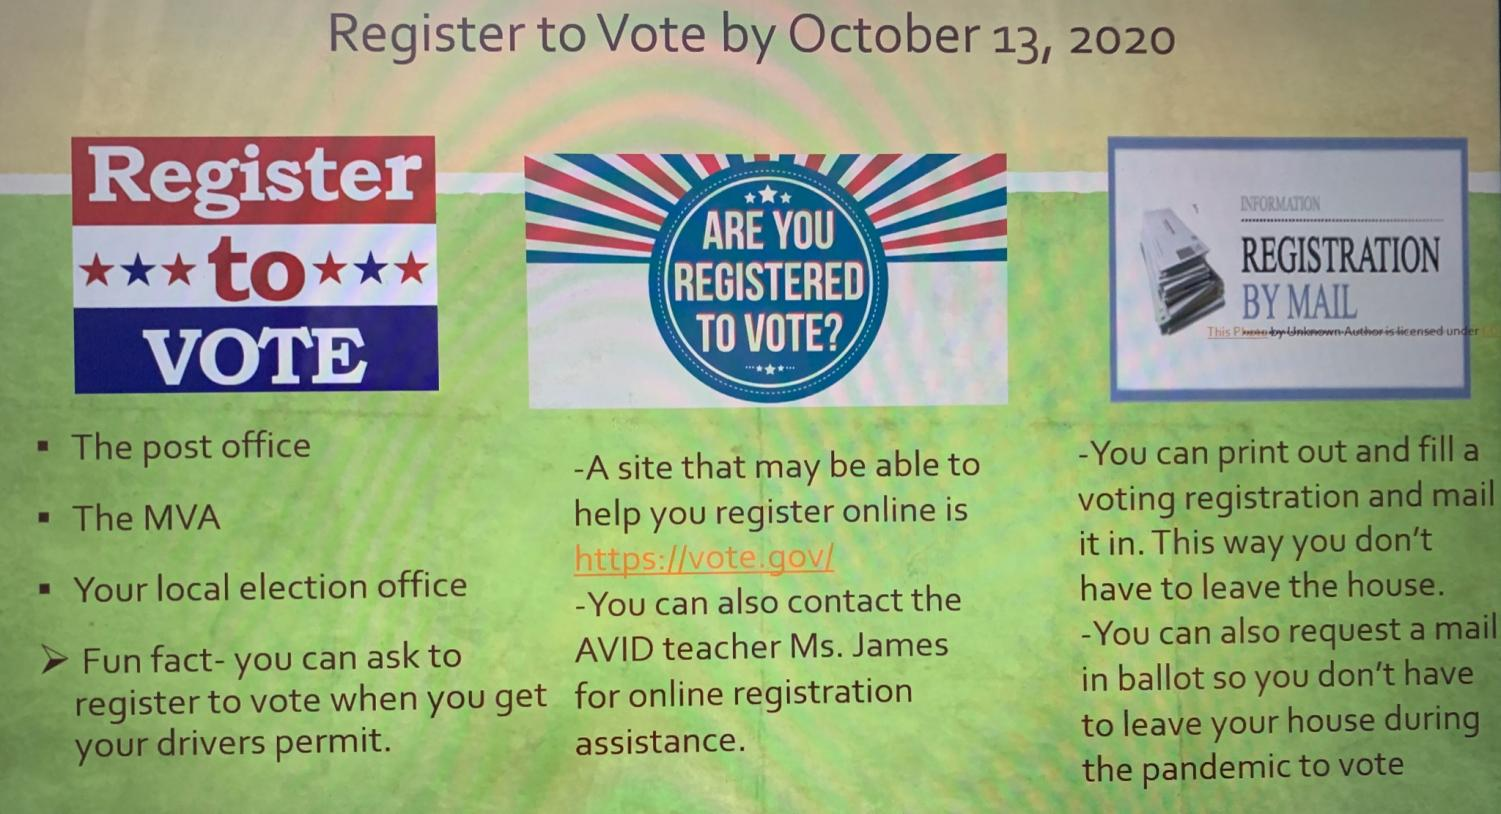 Deadline to register to vote is Tuesday Oct 13! Have your voice heard this election!